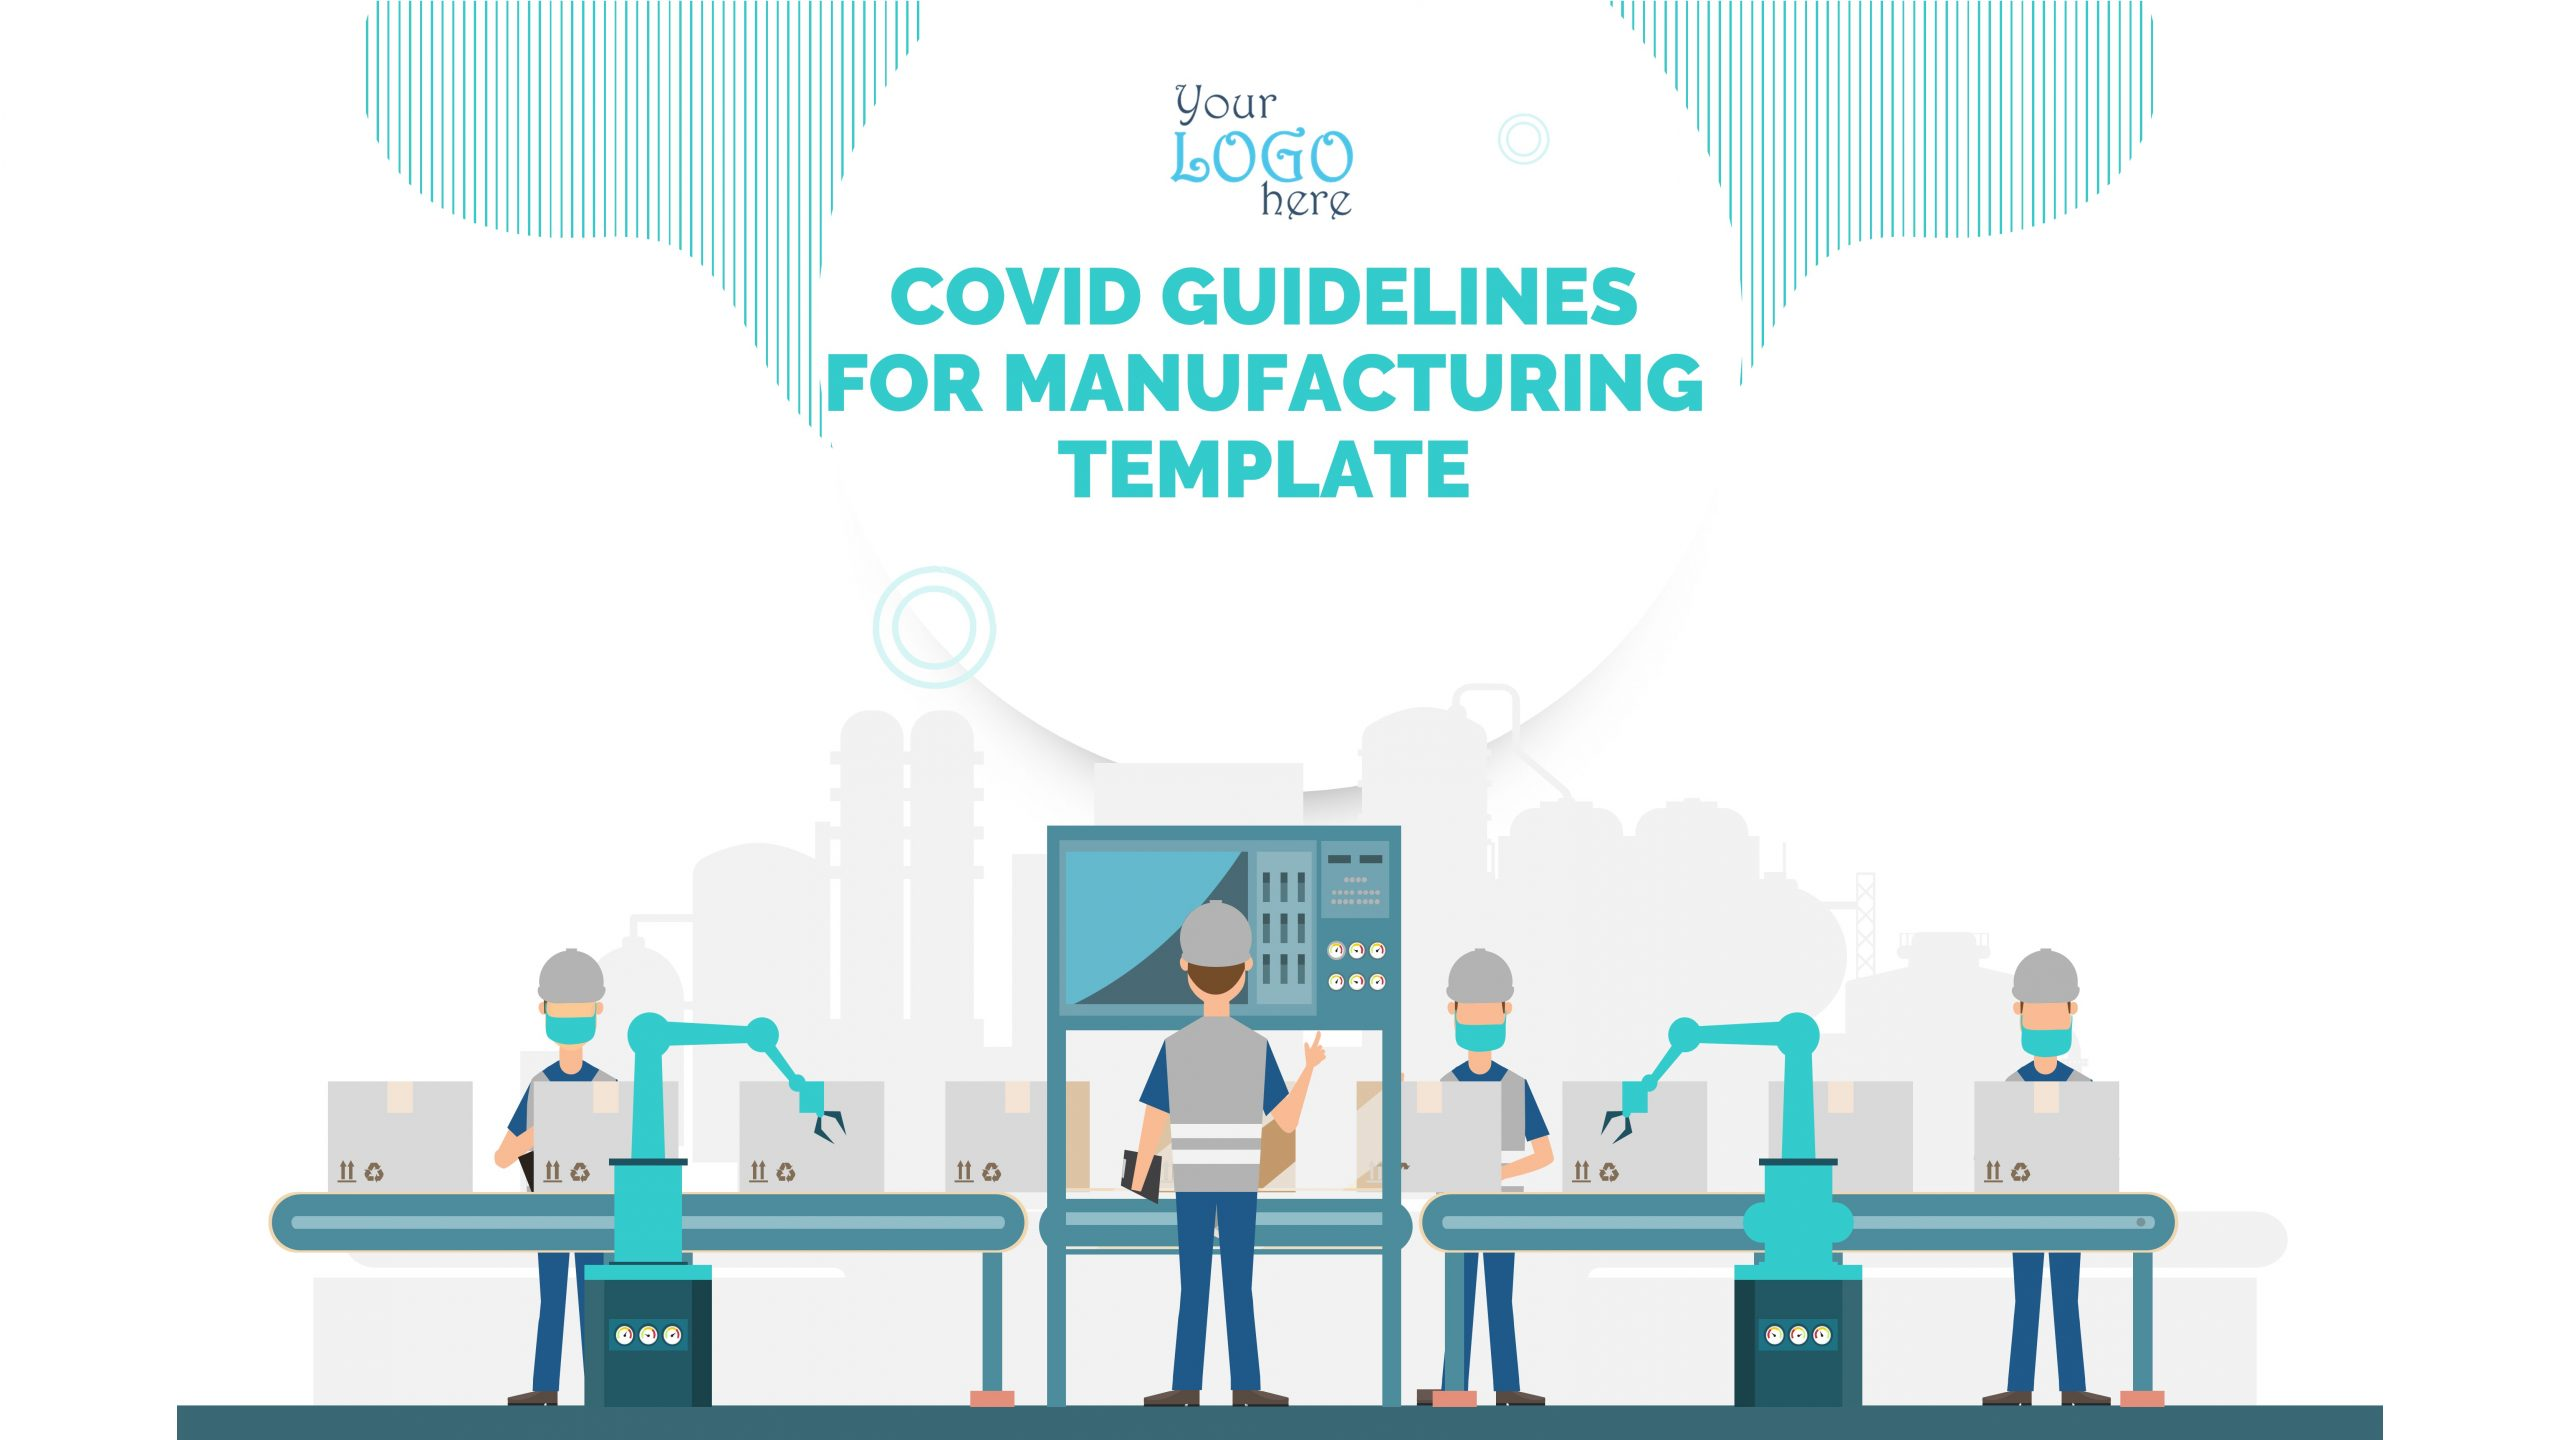 COVID Guidelines for Manufacturing Template